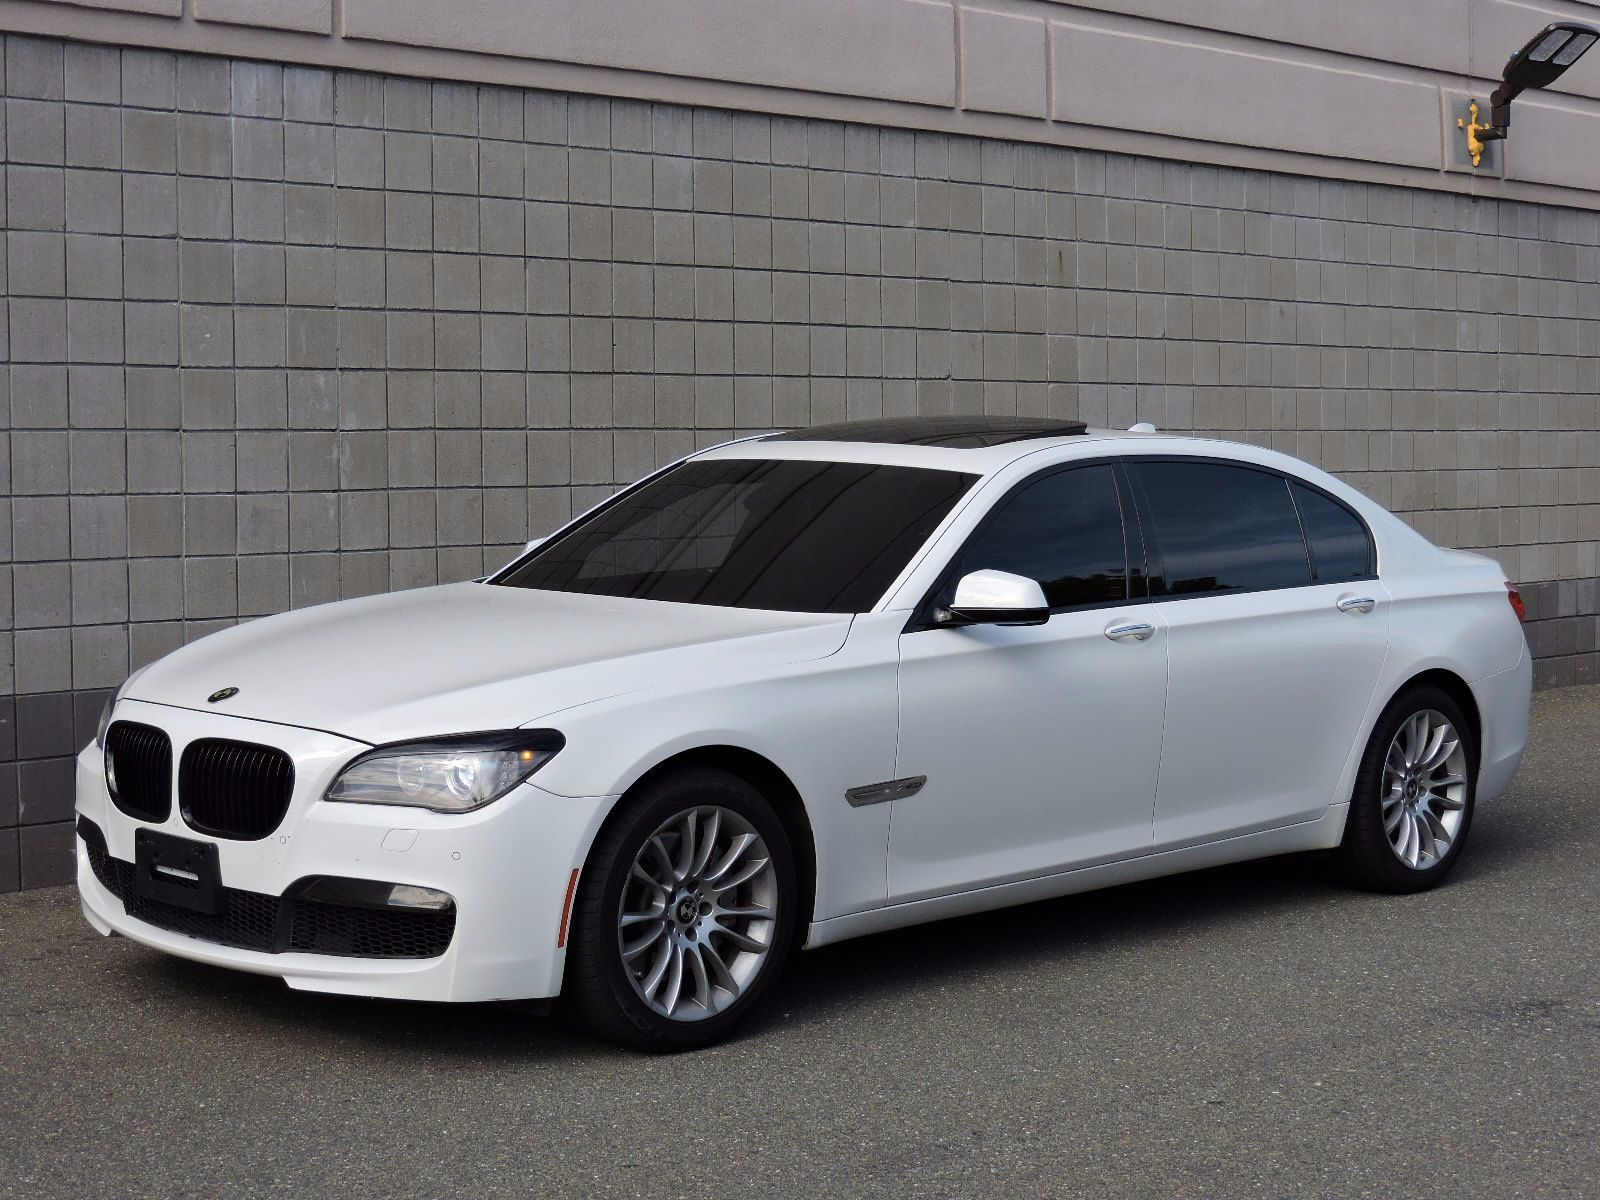 Bmw 750li 2012 Www Pixshark Com Images Galleries With